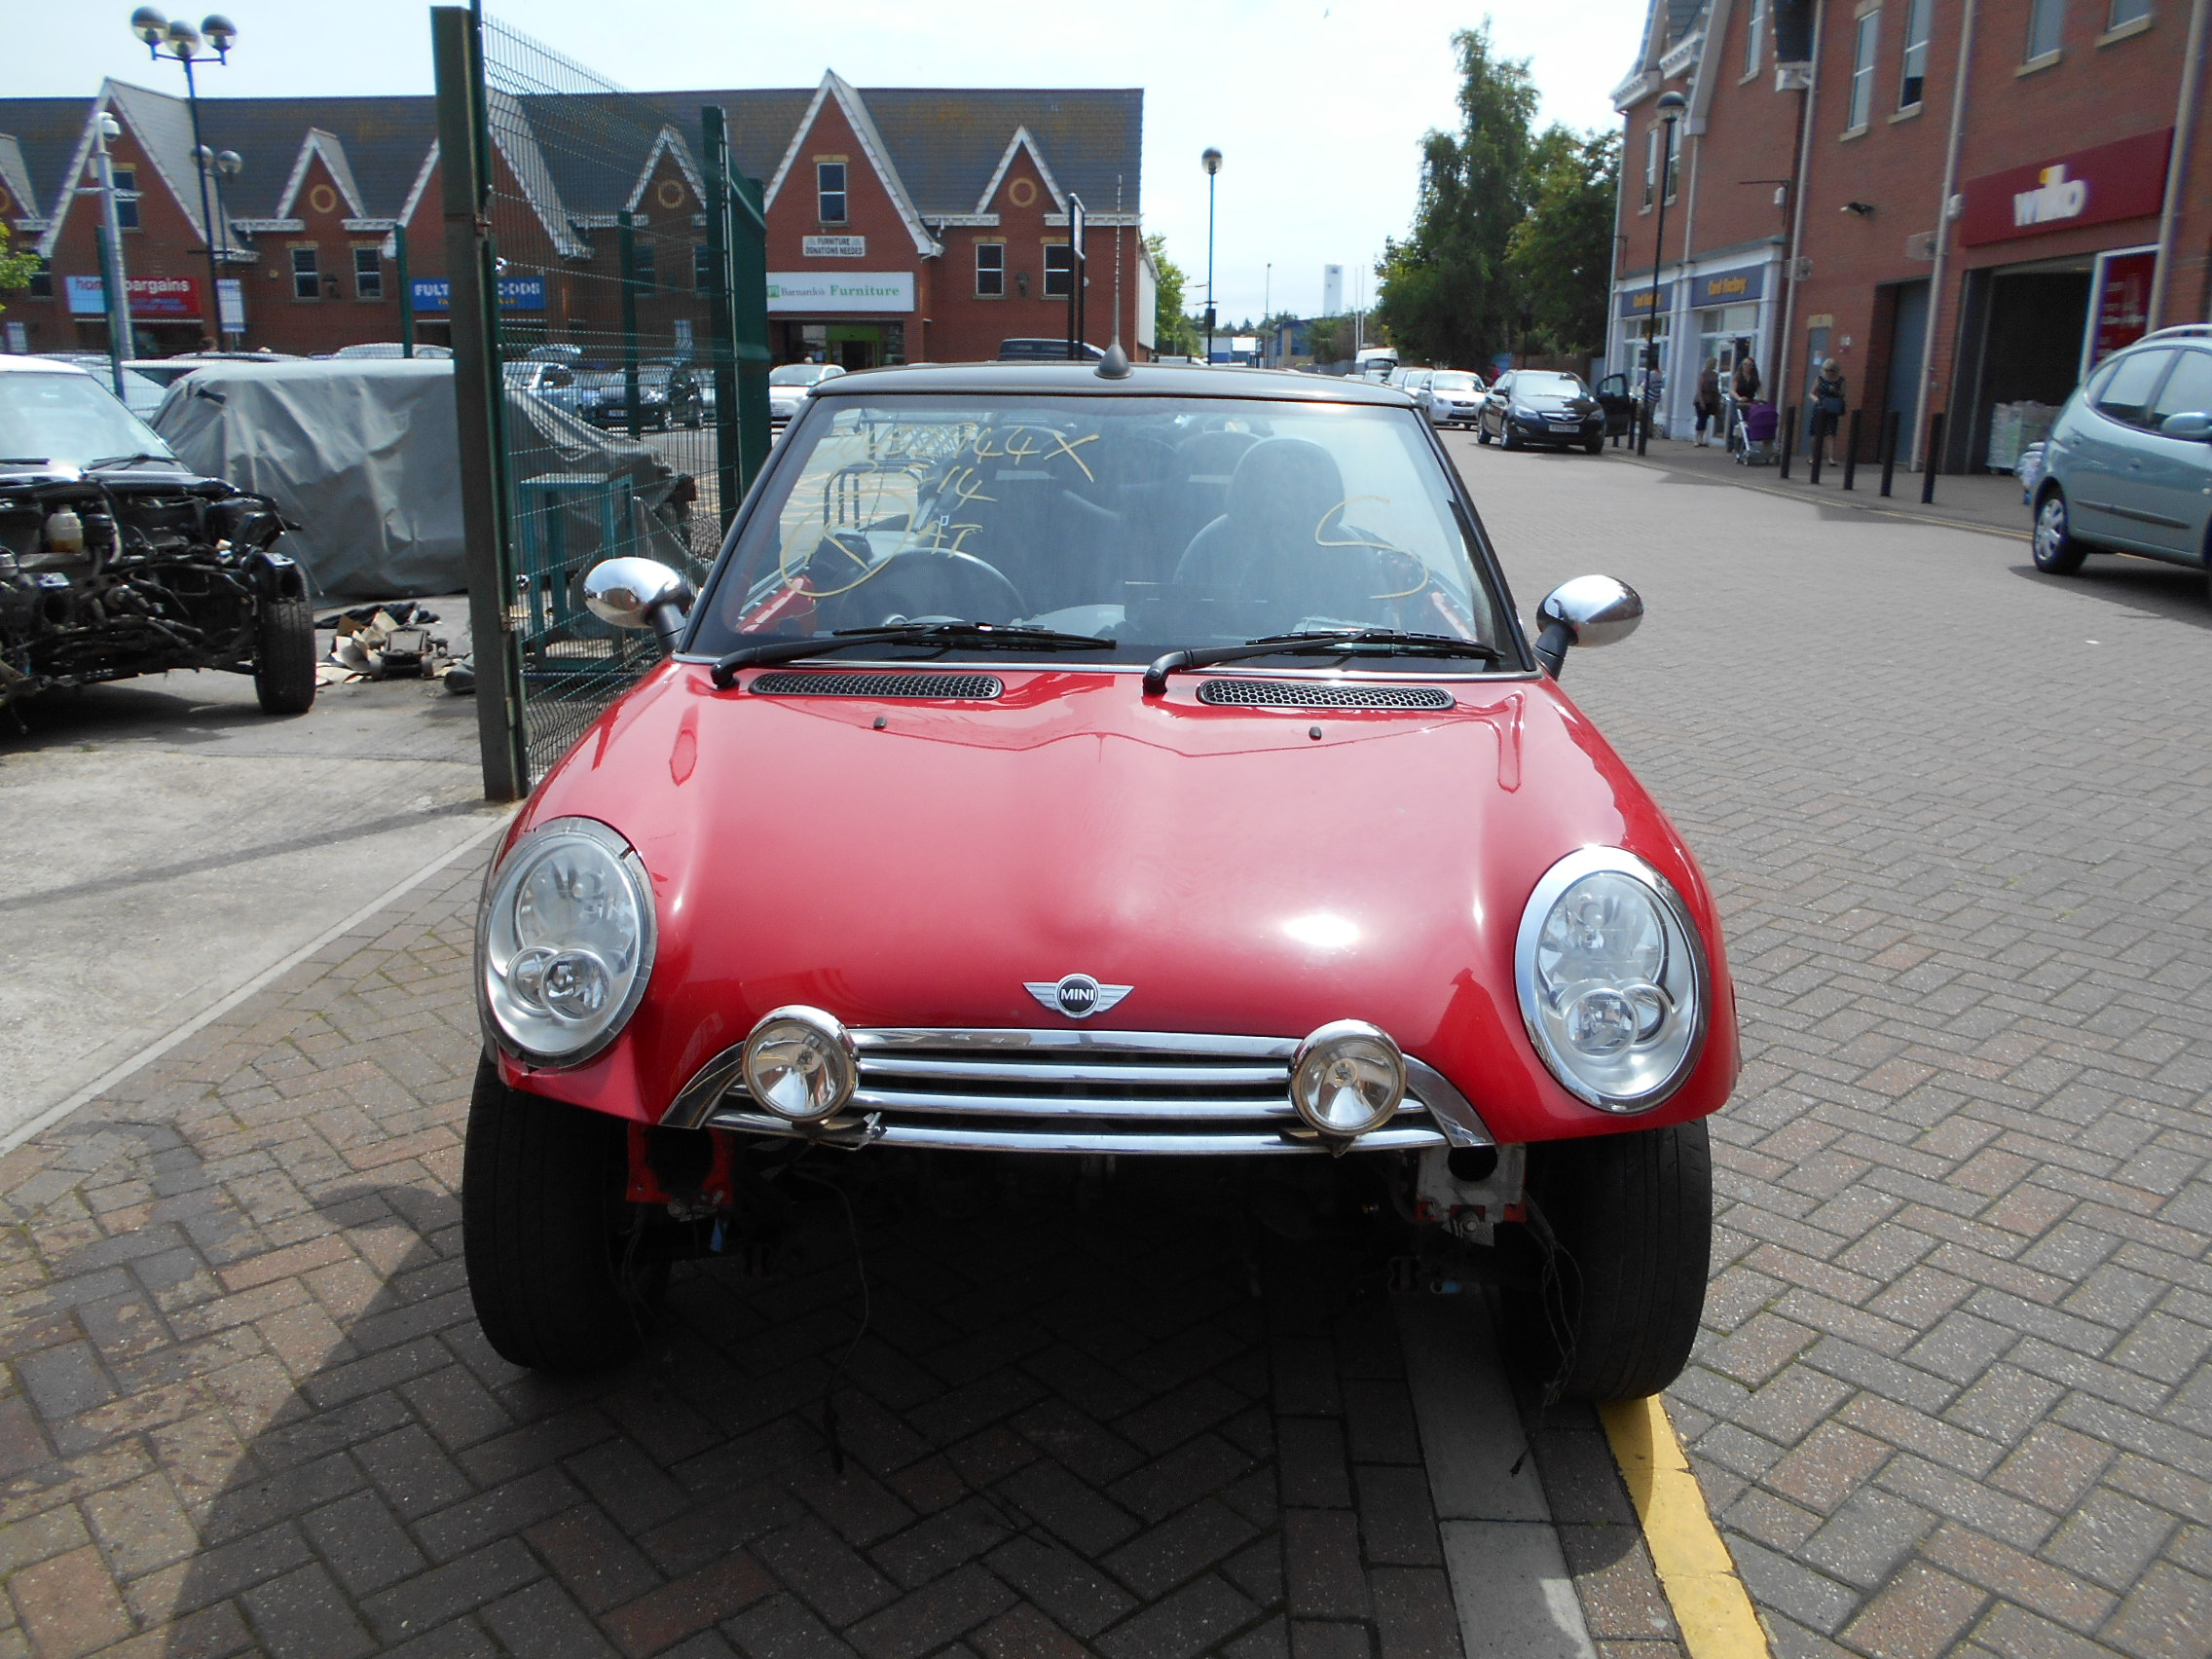 04 Chilli Red 1.6 BMW Mini Convertible - 7